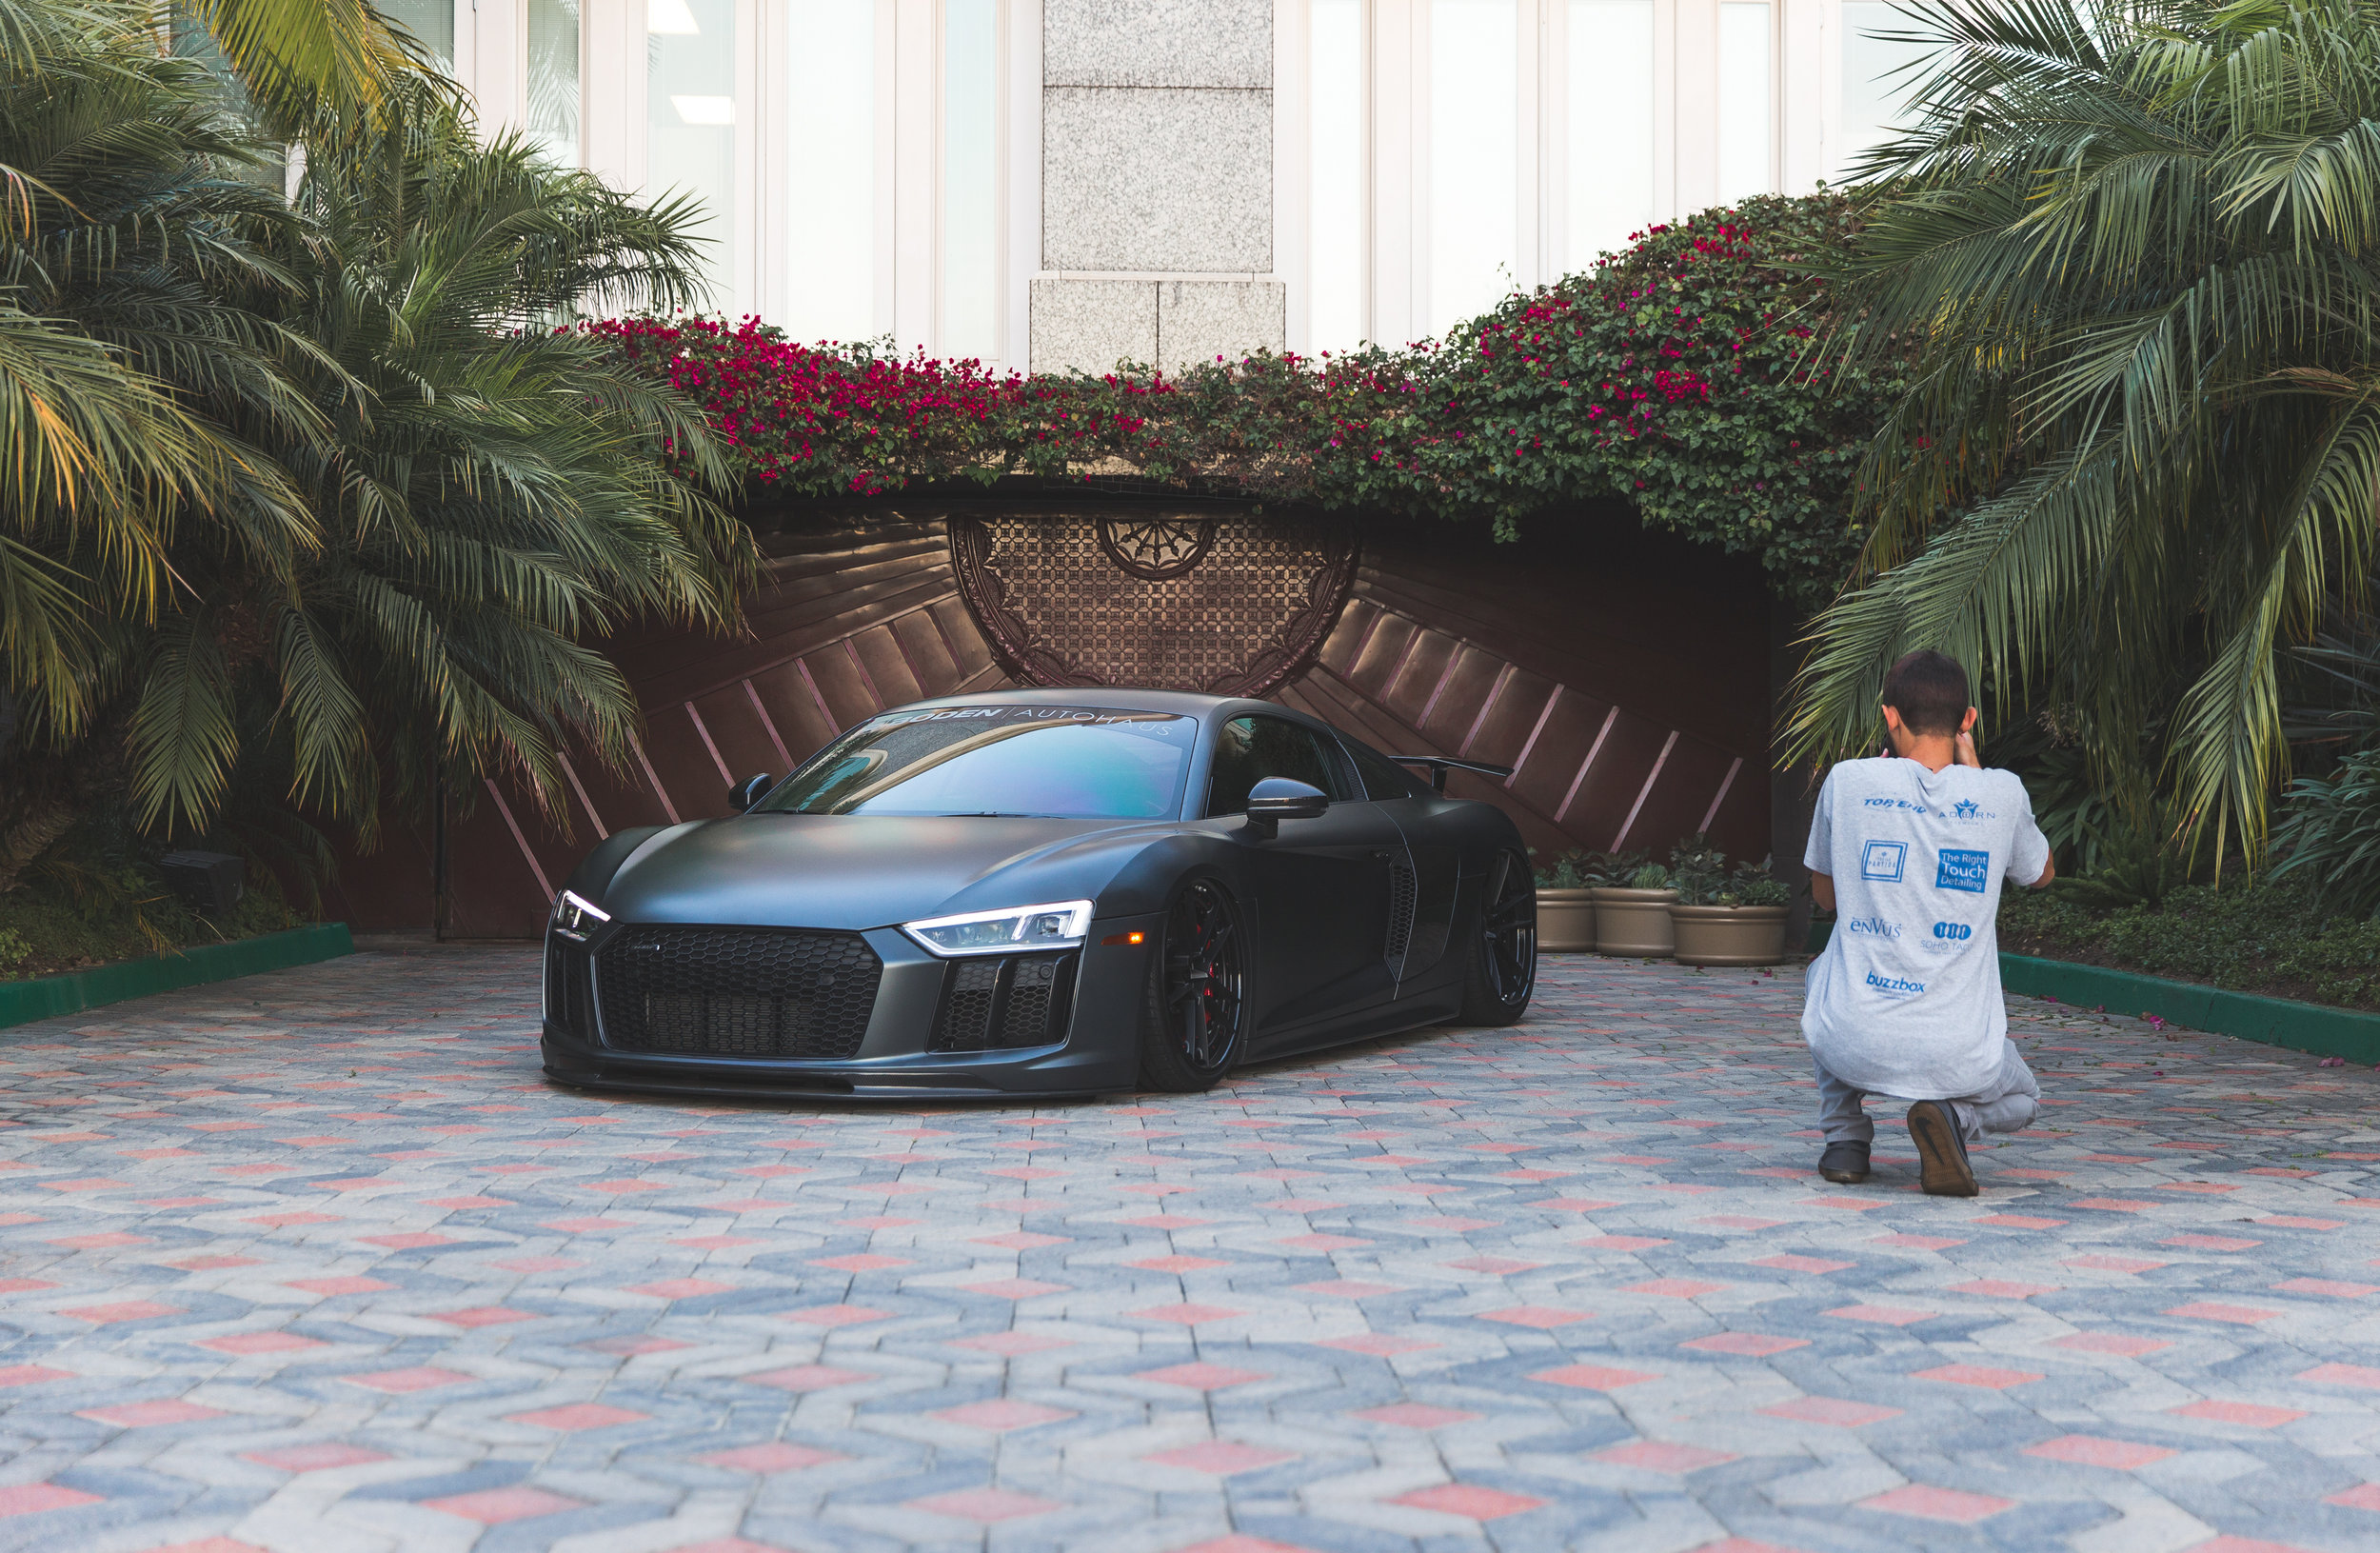 Stay_Driven_Page_R8_Newport-11.jpg